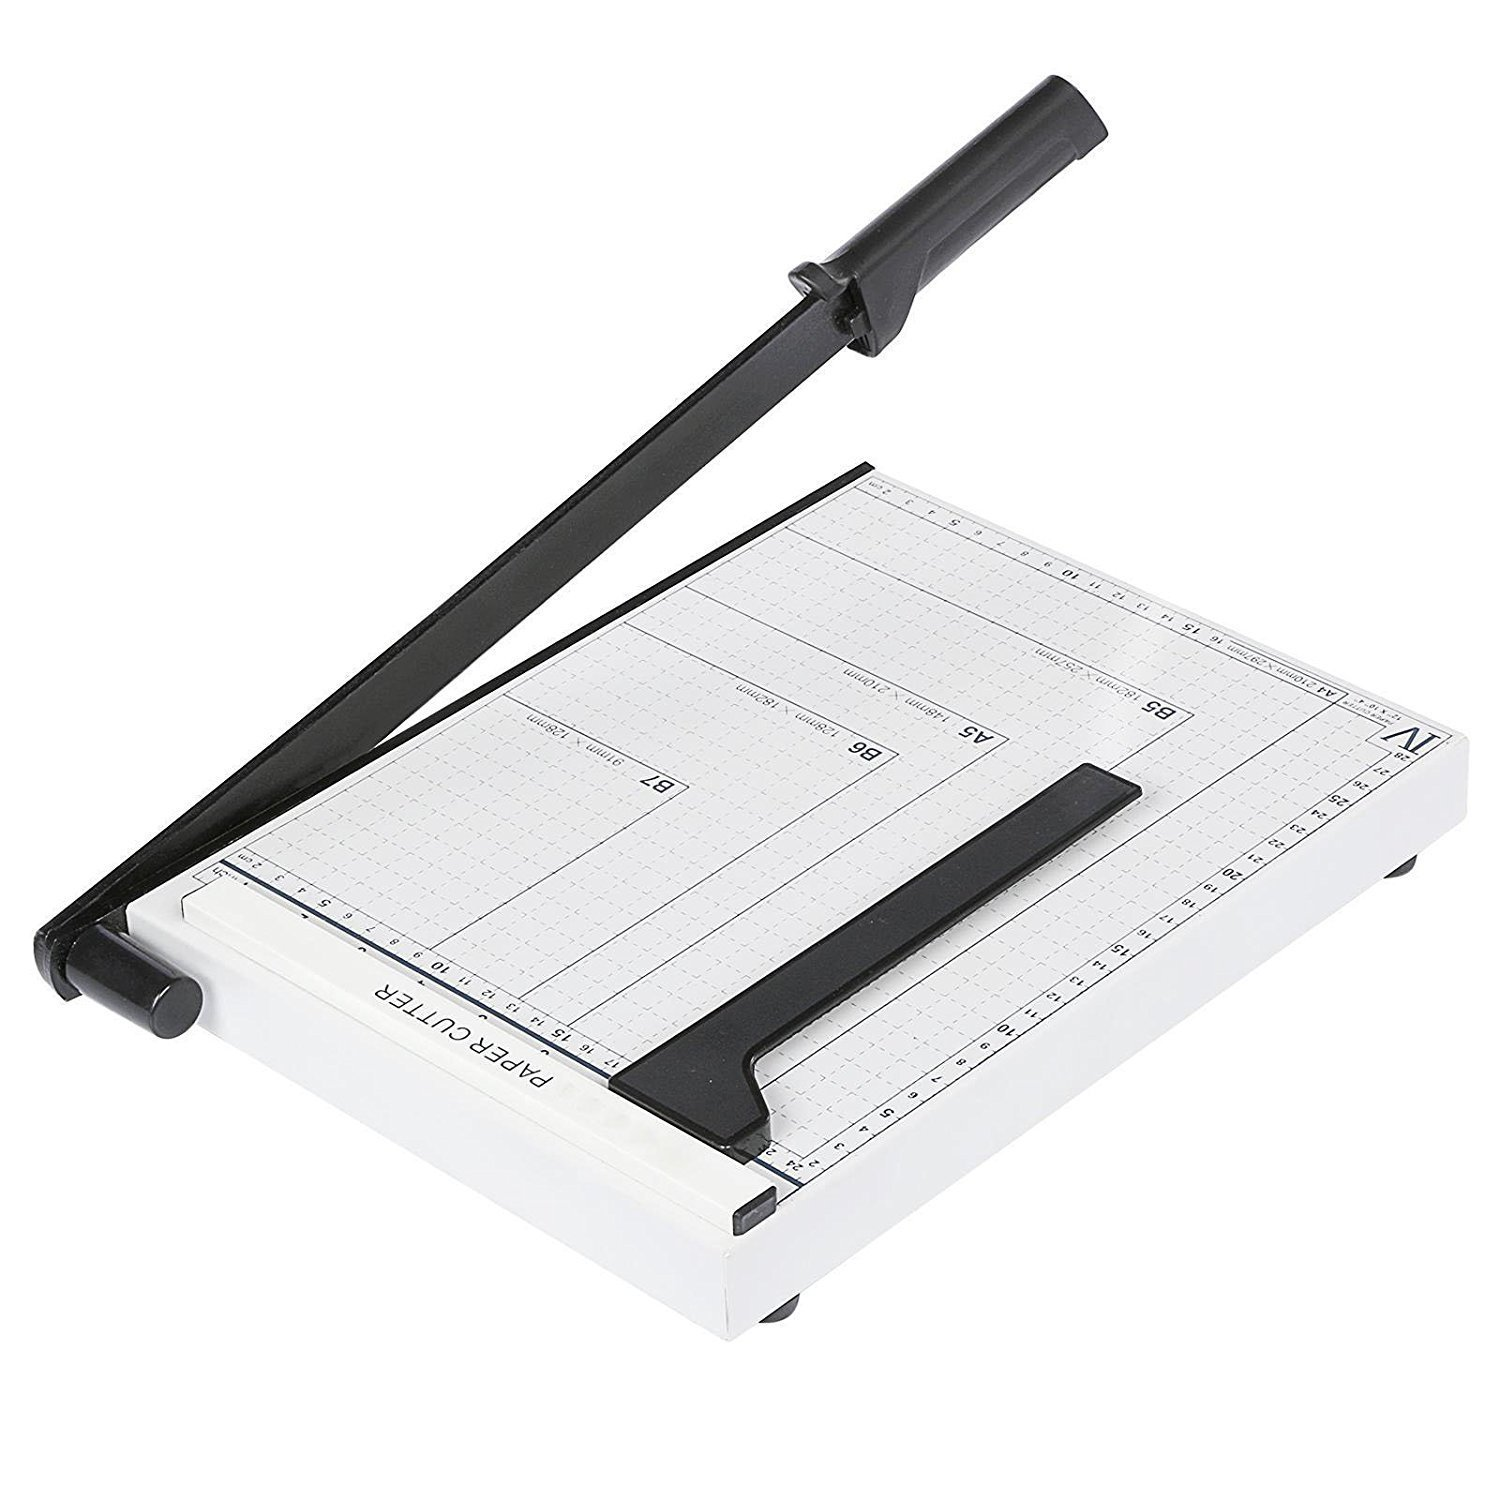 Guillotine Paper Trimmer, Heavy Duty Professional A4 Paper Desk Cutting Tool Photo Cutter Machine for Home/Office Use